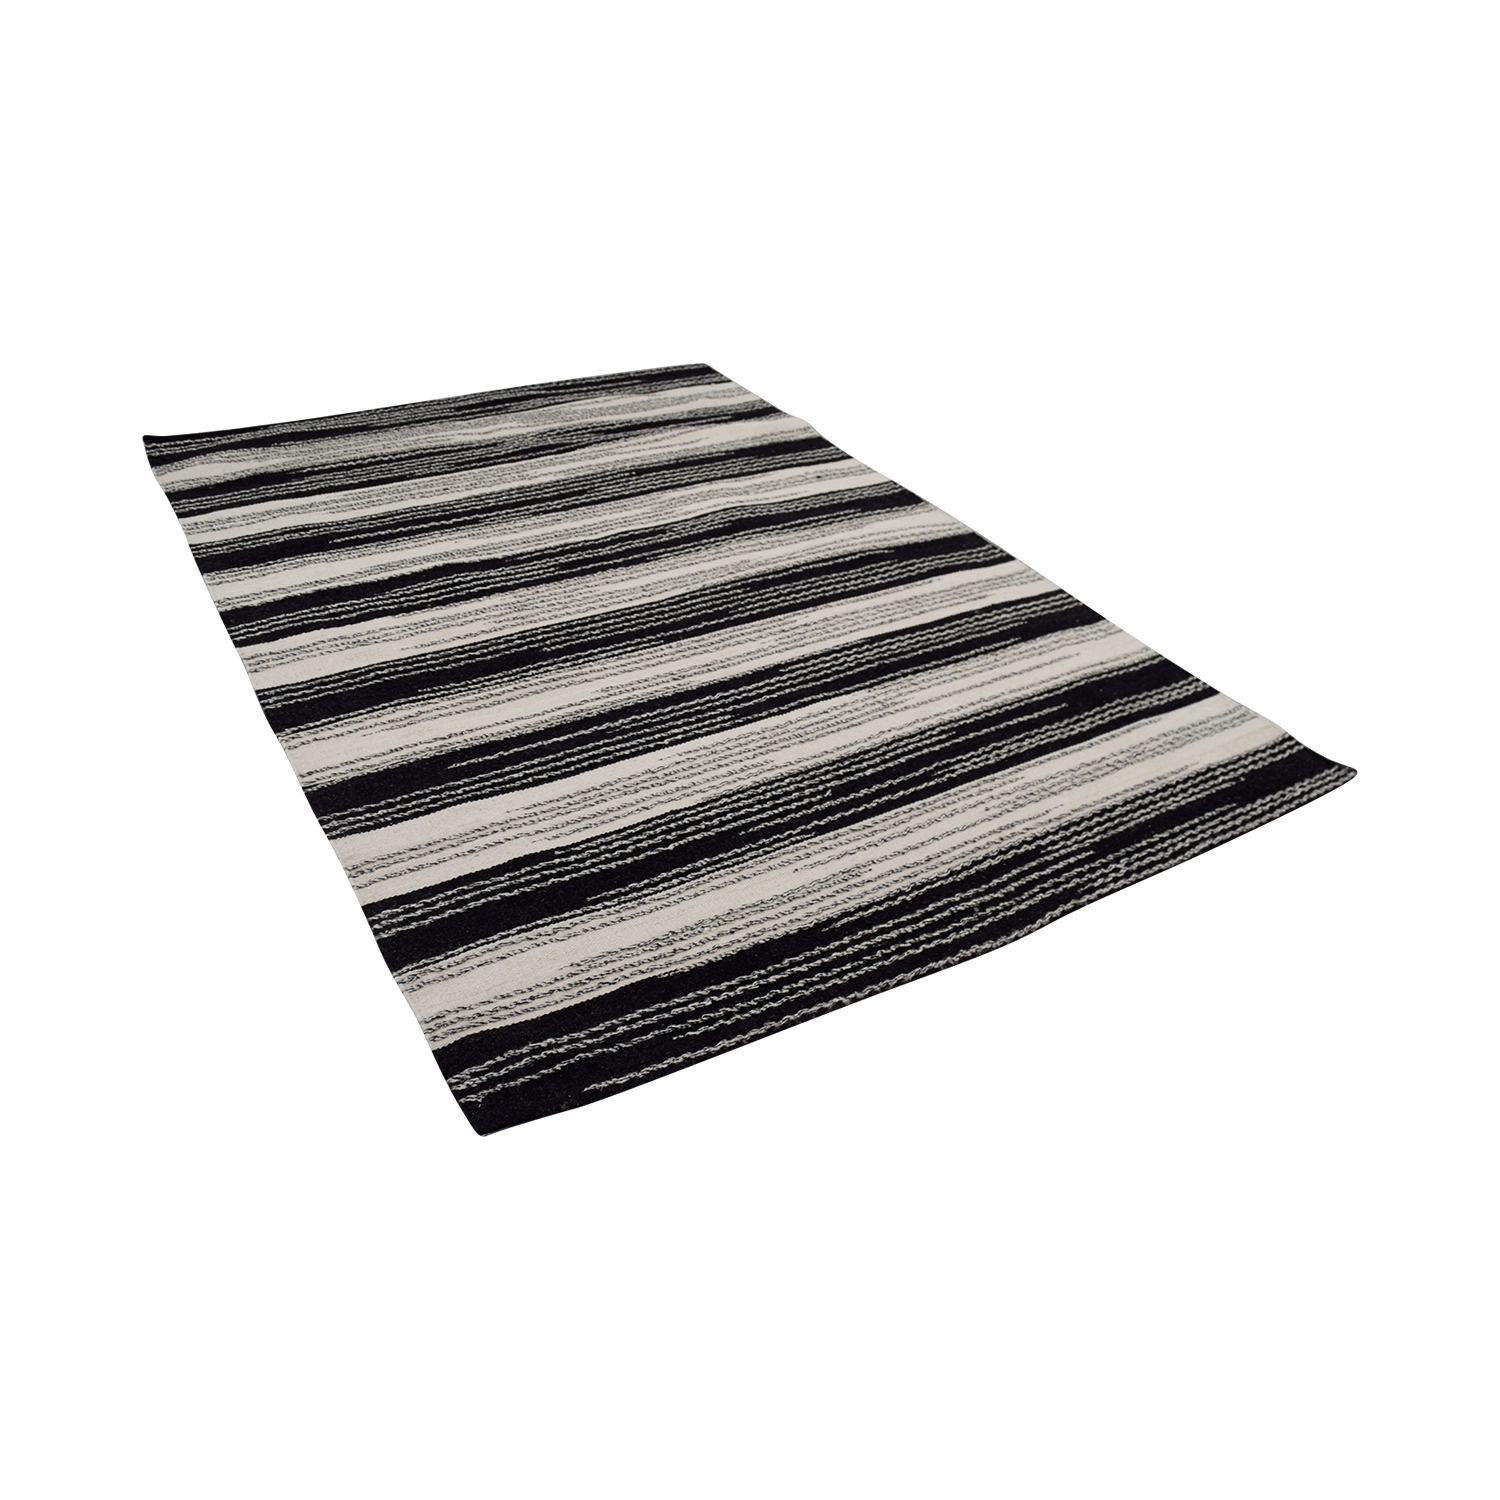 Obeetee Obeetee Black and White Striped Weave Rug discount